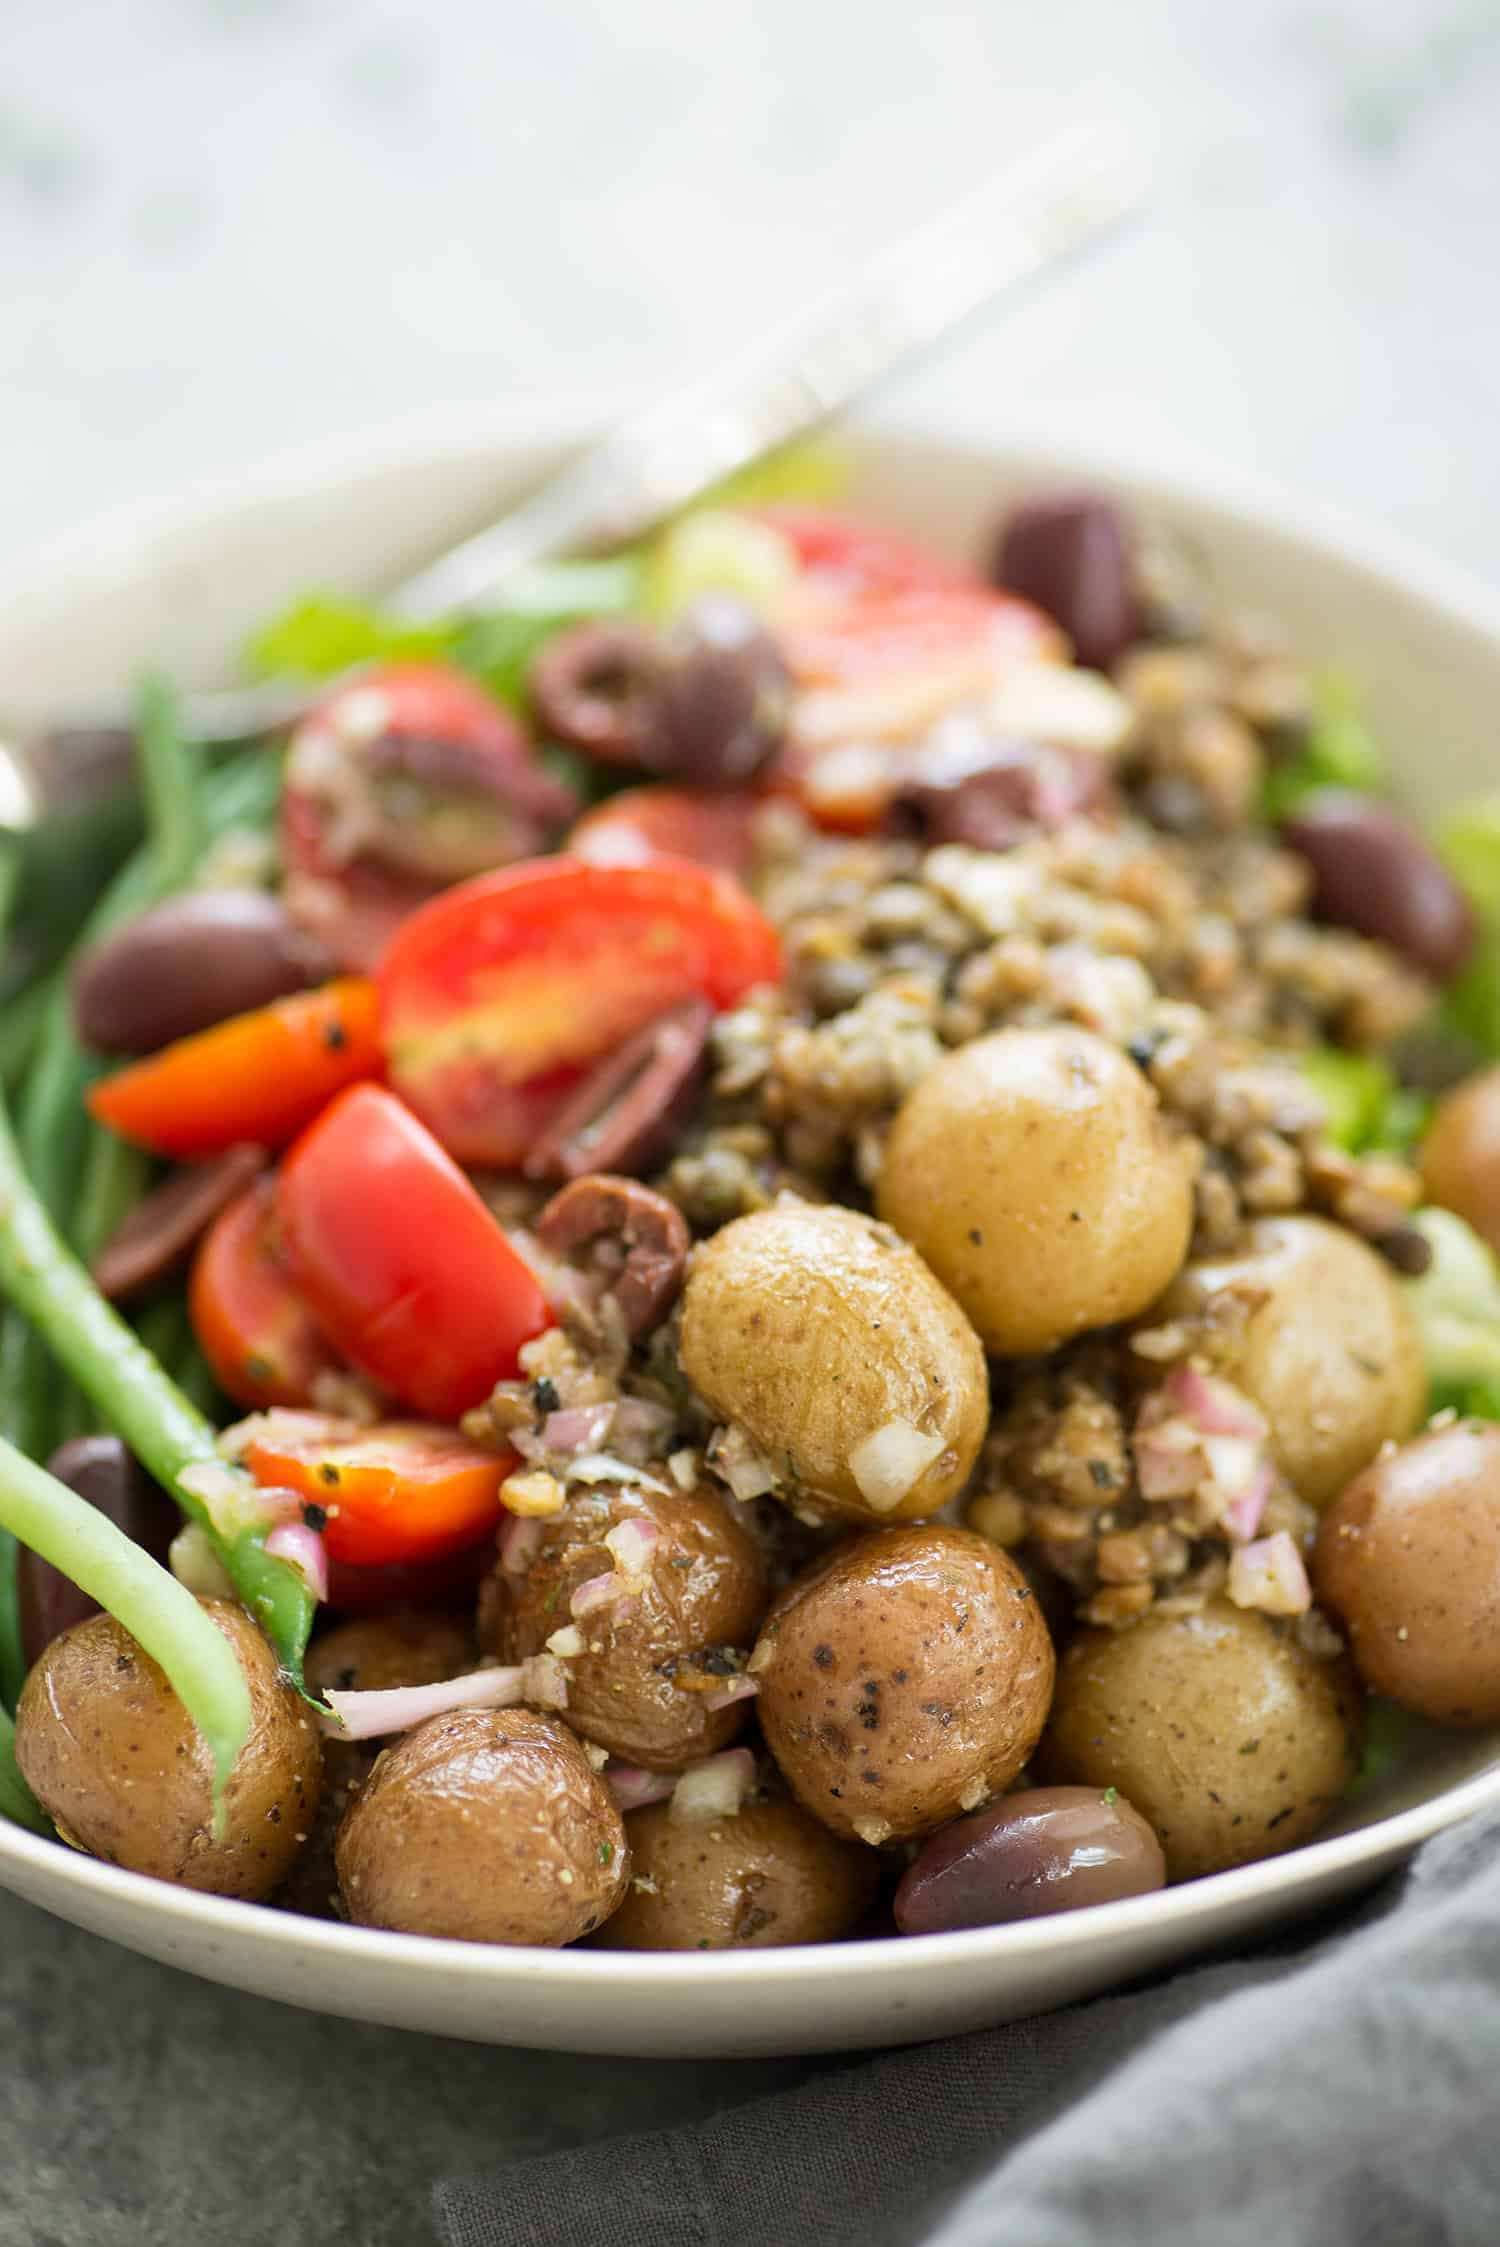 Lentil Nicoise Salad! You will love this protein packed plant-based meal. Potatoes, vegetables, seasoned lentils, green beans and a shallot dressing. Gluten-Free and Vegan | www.delishknowledge.com